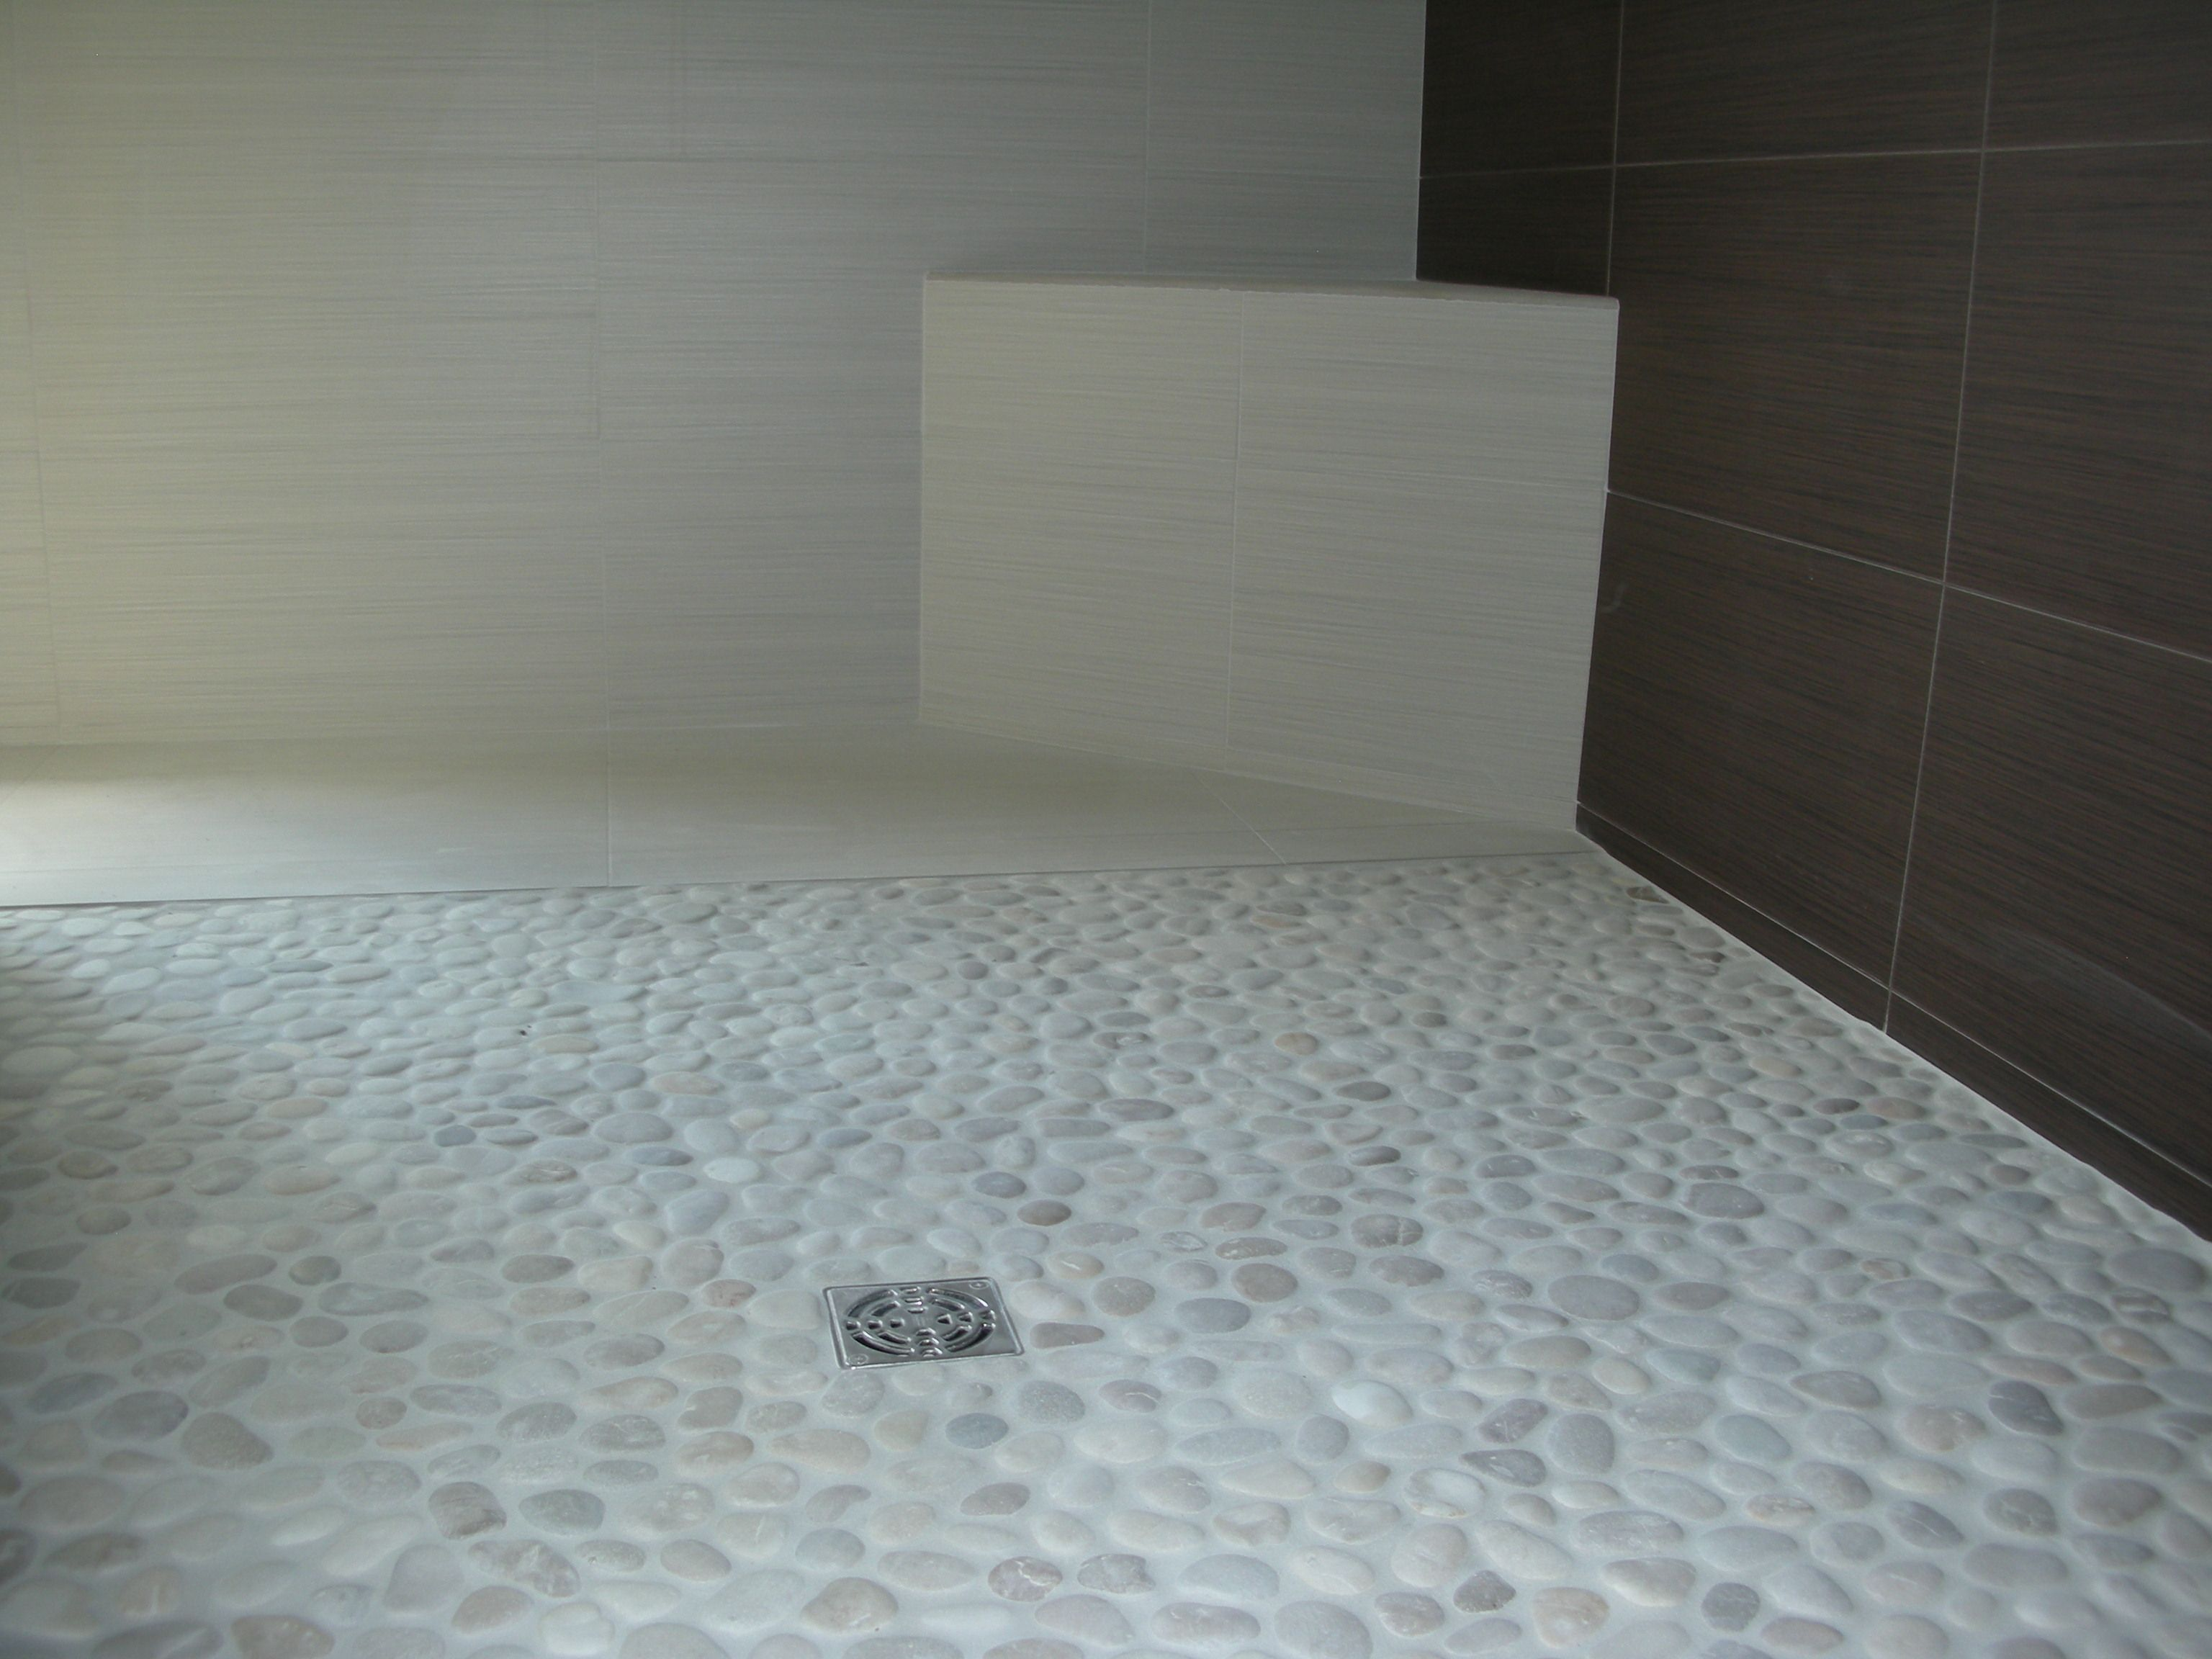 White Pebble Tile | White pebbles, Pebble shower floor and Pebble tiles